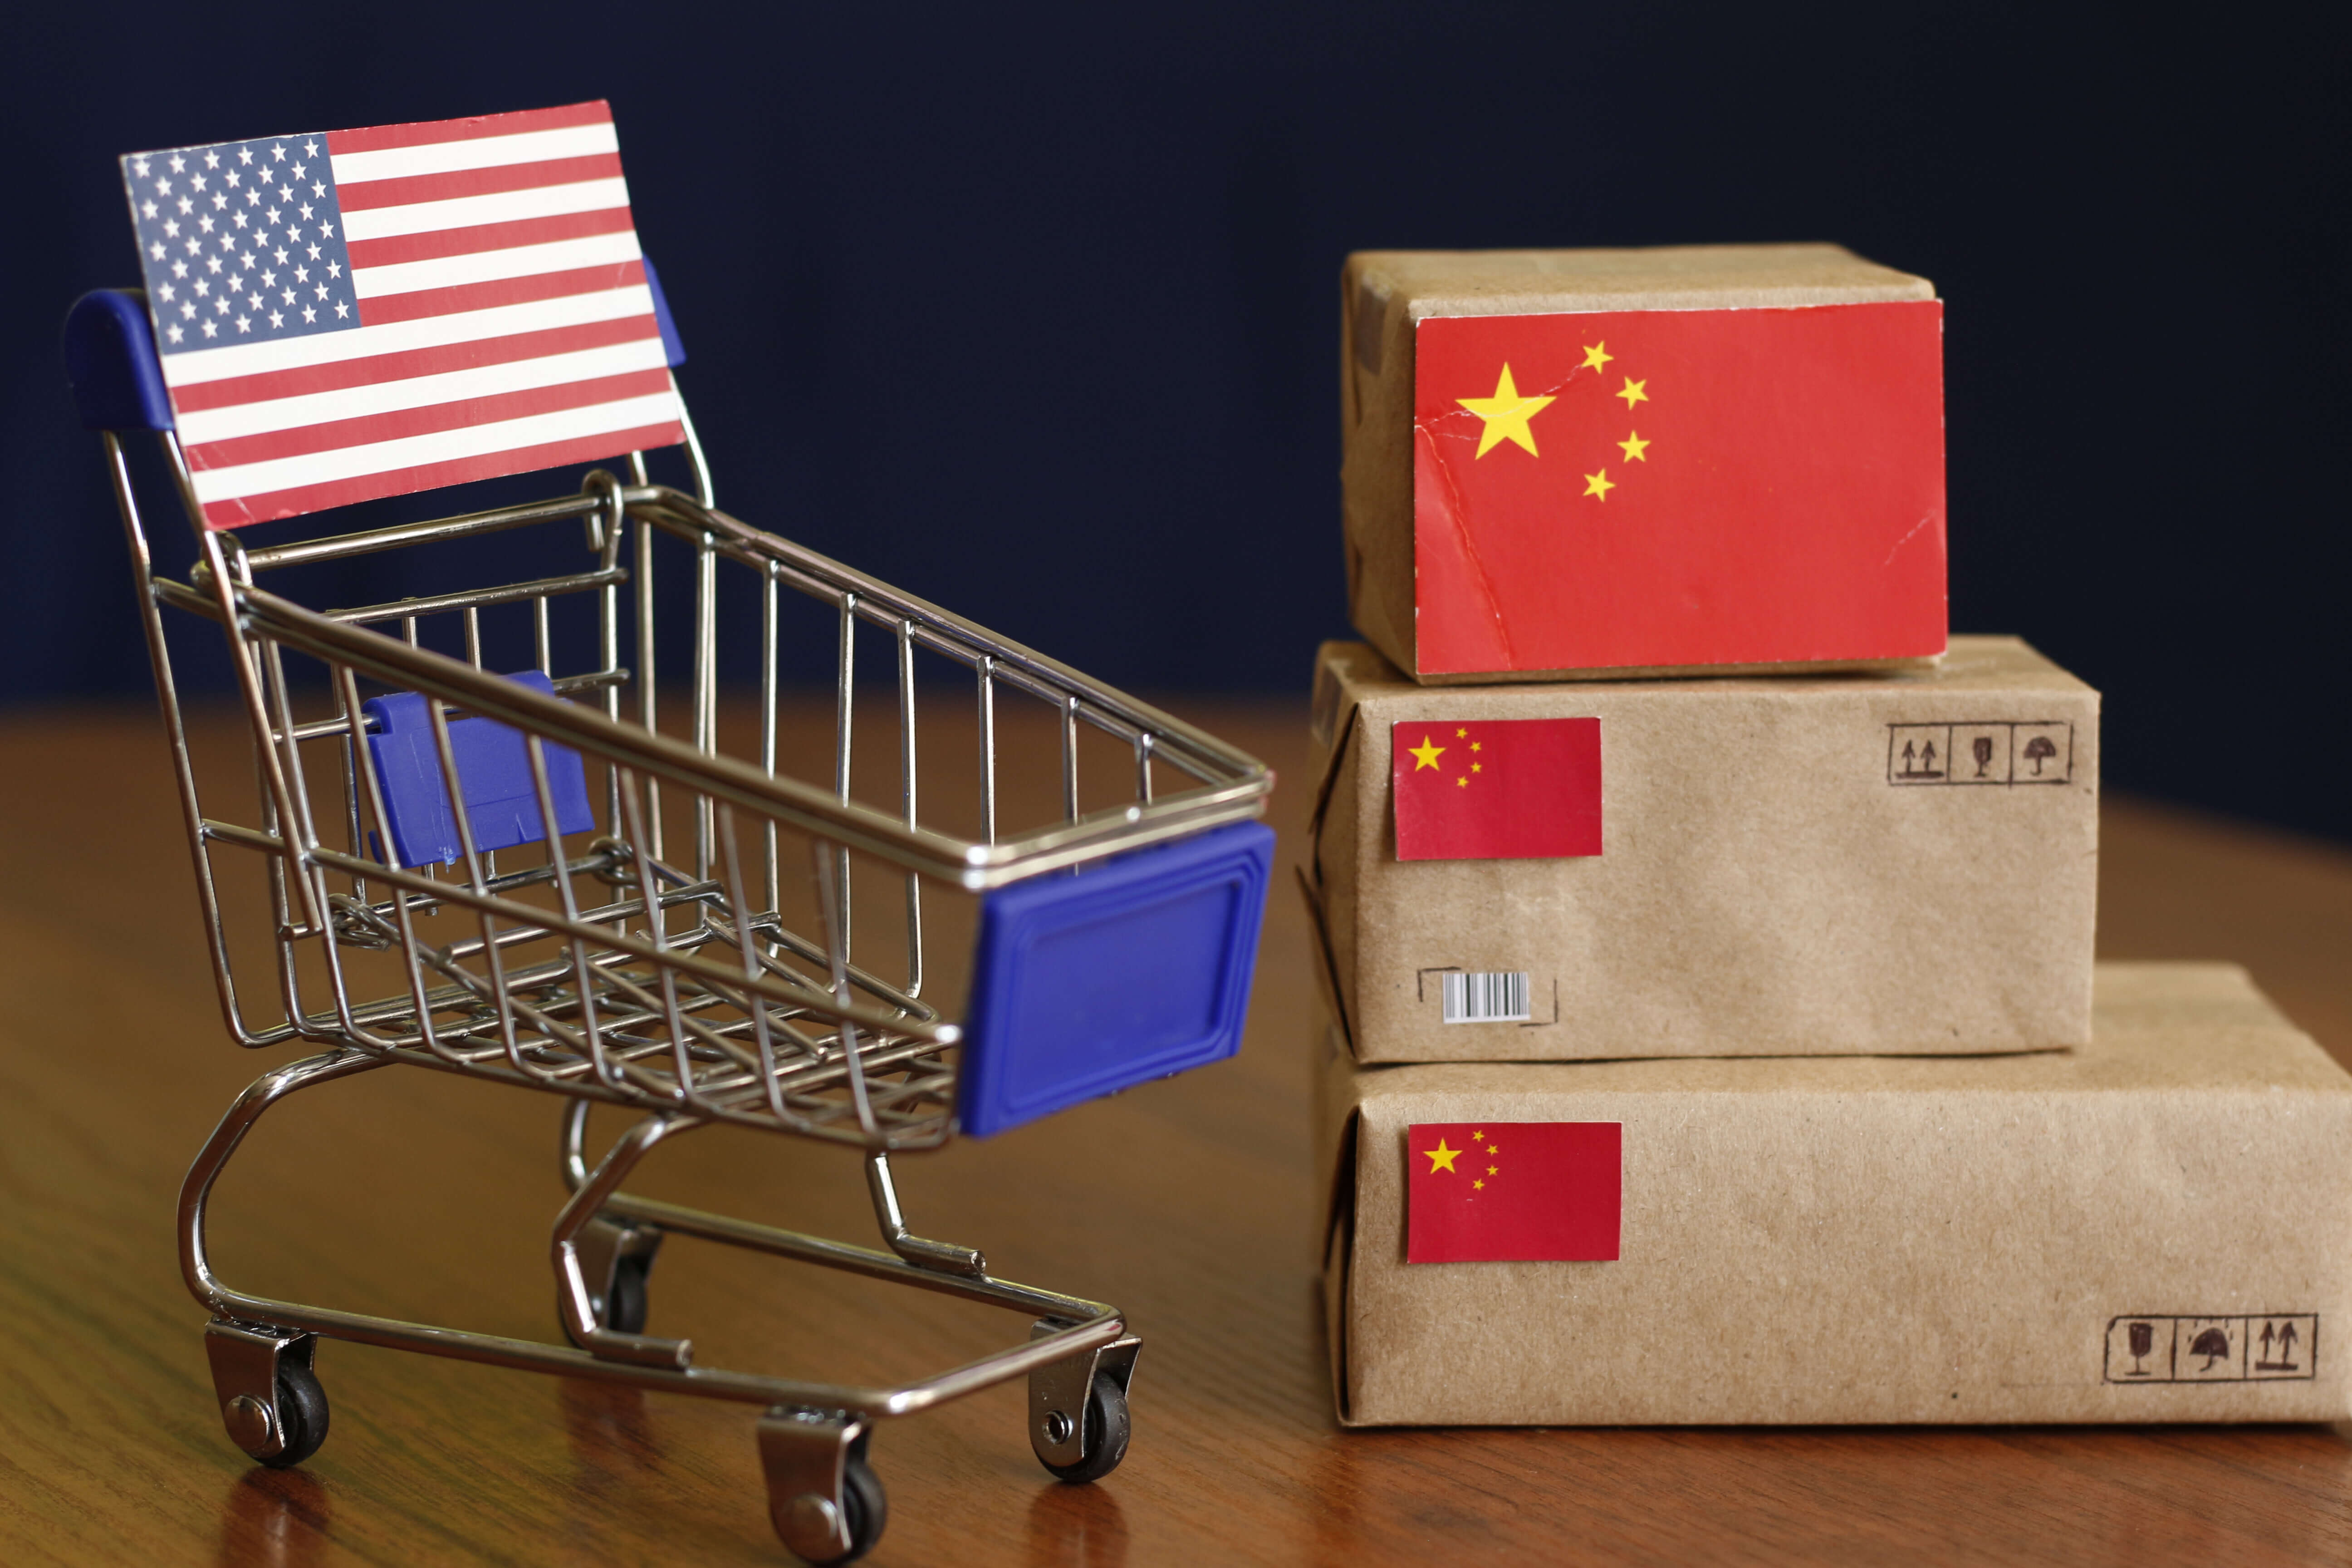 China acts cautiously during trade war Tension